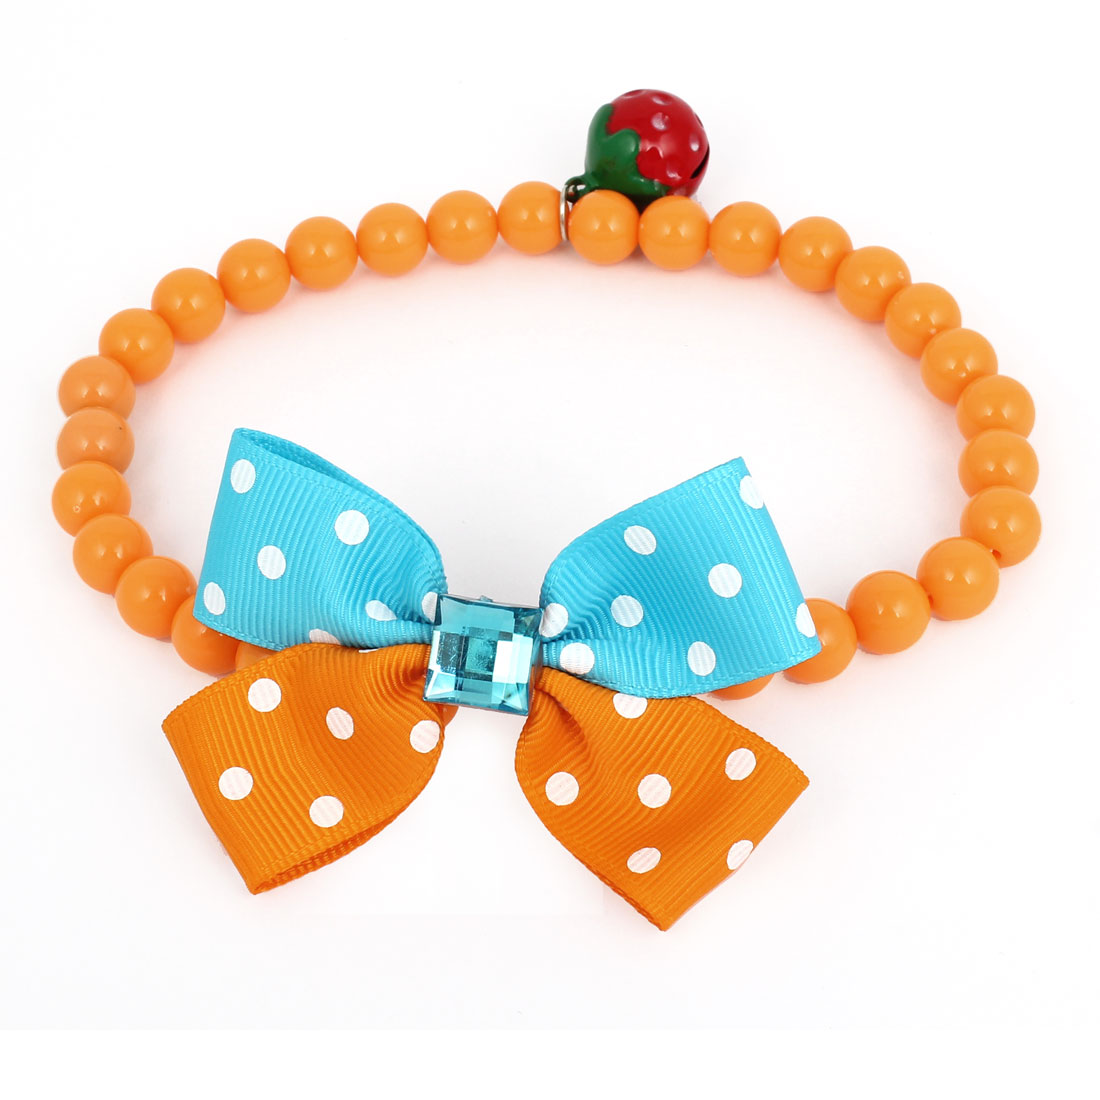 Metal Bell Pendant Bowtie Accent Pet Dog Plastic Round Beads Collar Necklace Orange Blue M